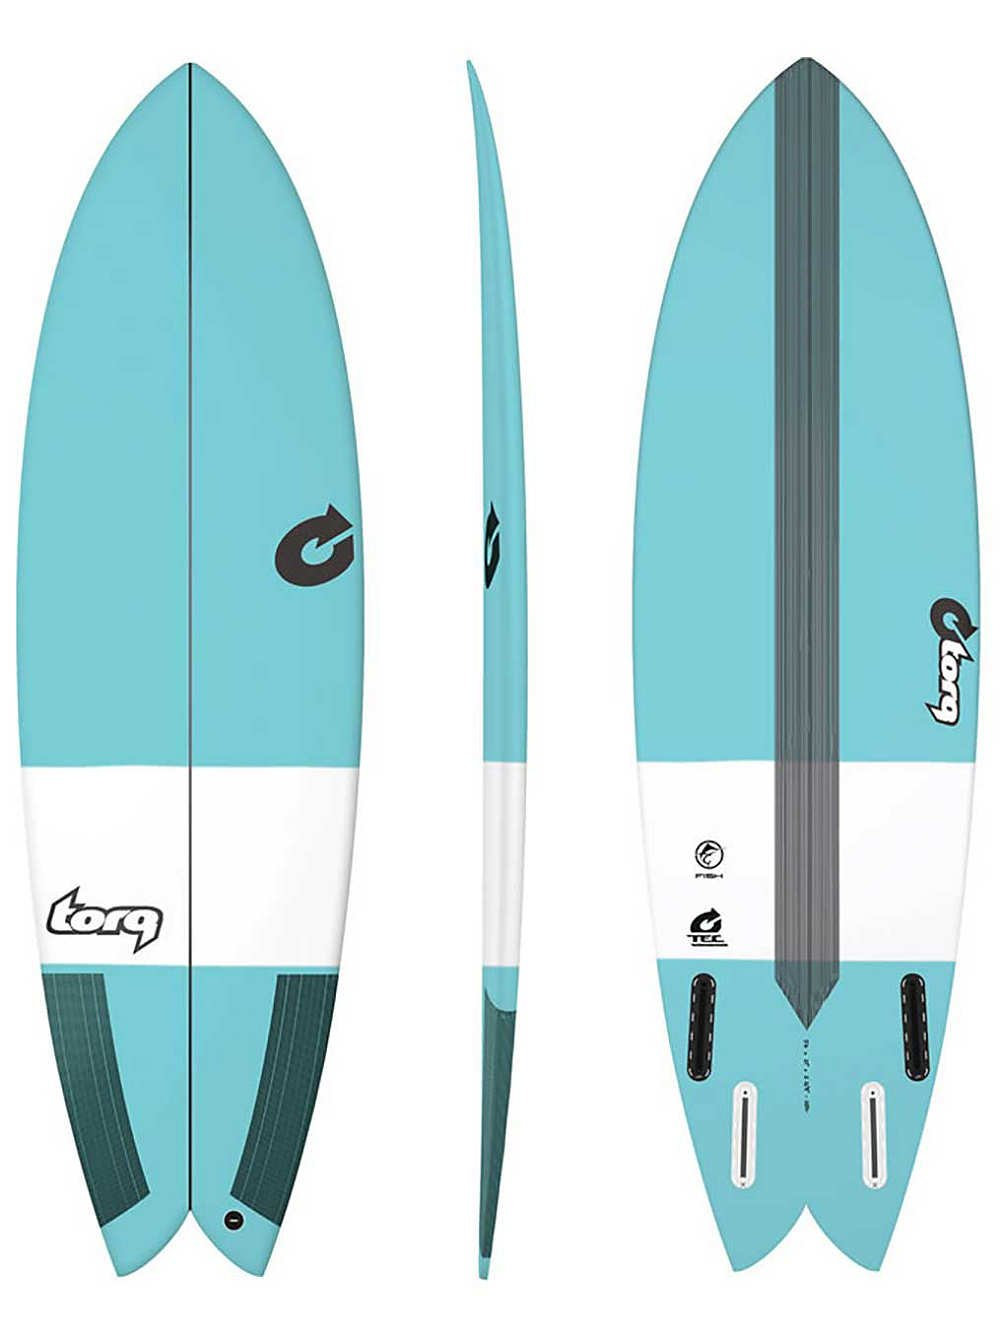 Tabla de Surf Torq epoxy Tec Fish 5.8 Blue: Amazon.es: Deportes y aire libre